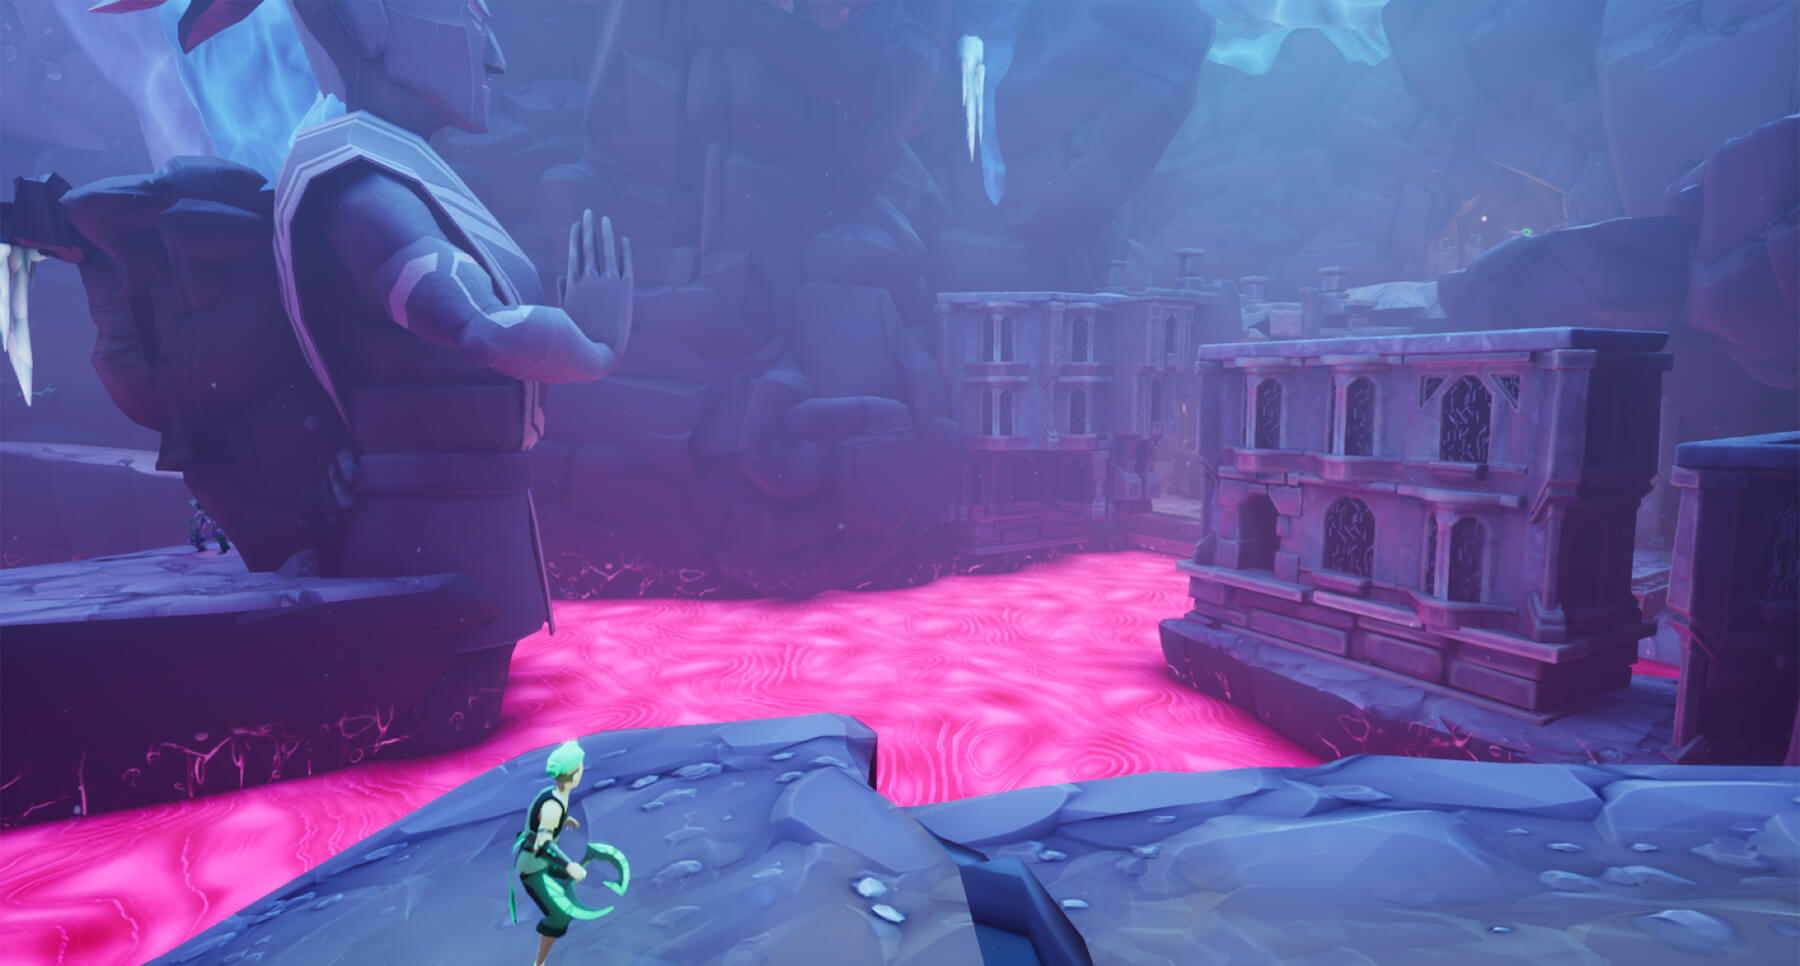 Game screenshot showing a monk protagonist standing amidst underground ruins